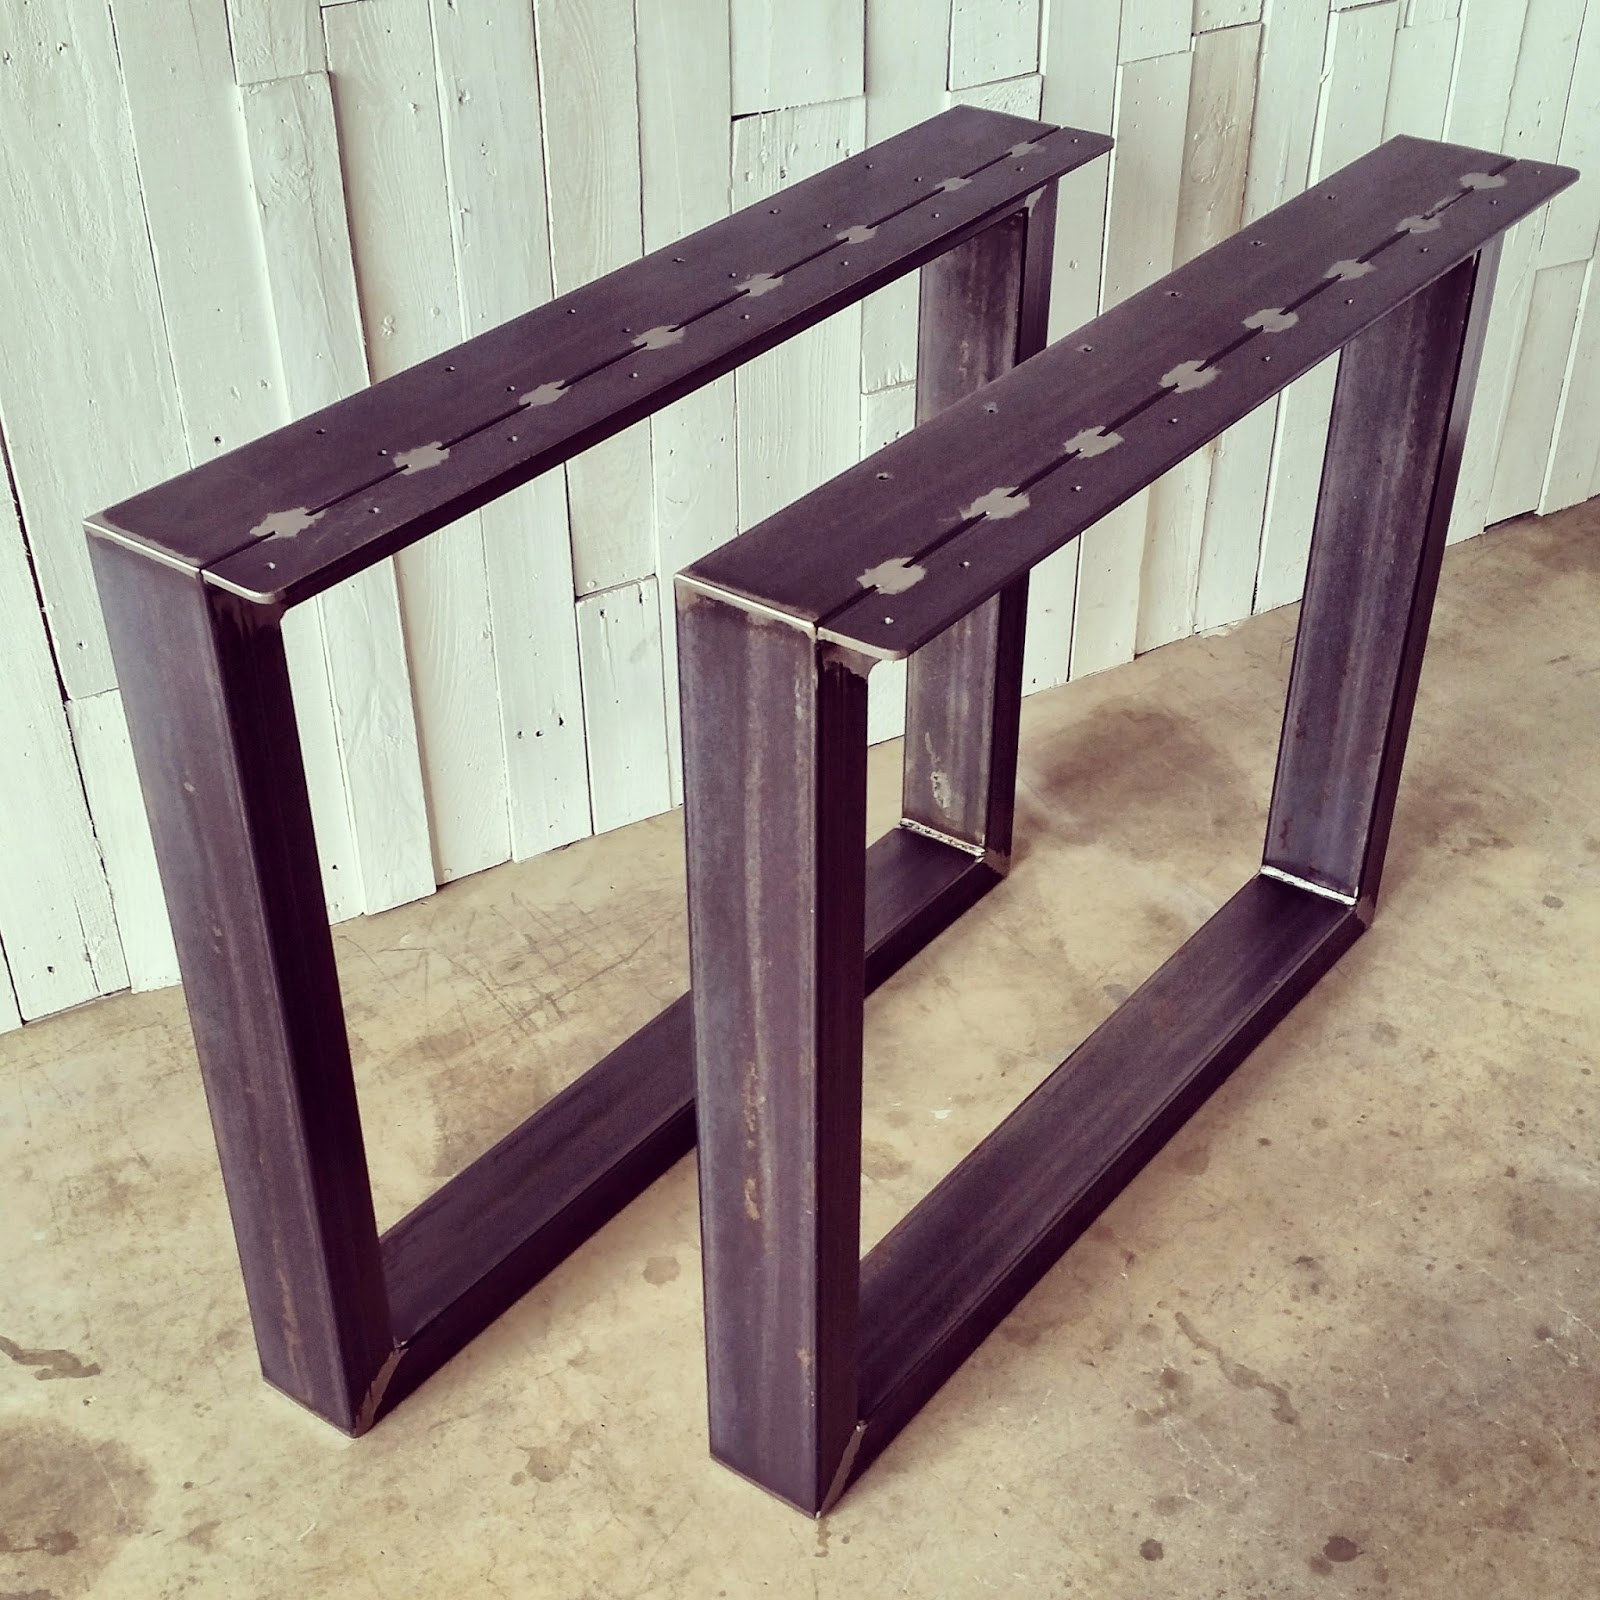 Romy Square Metal Coffee Table Am Pm: Urban Ironcraft